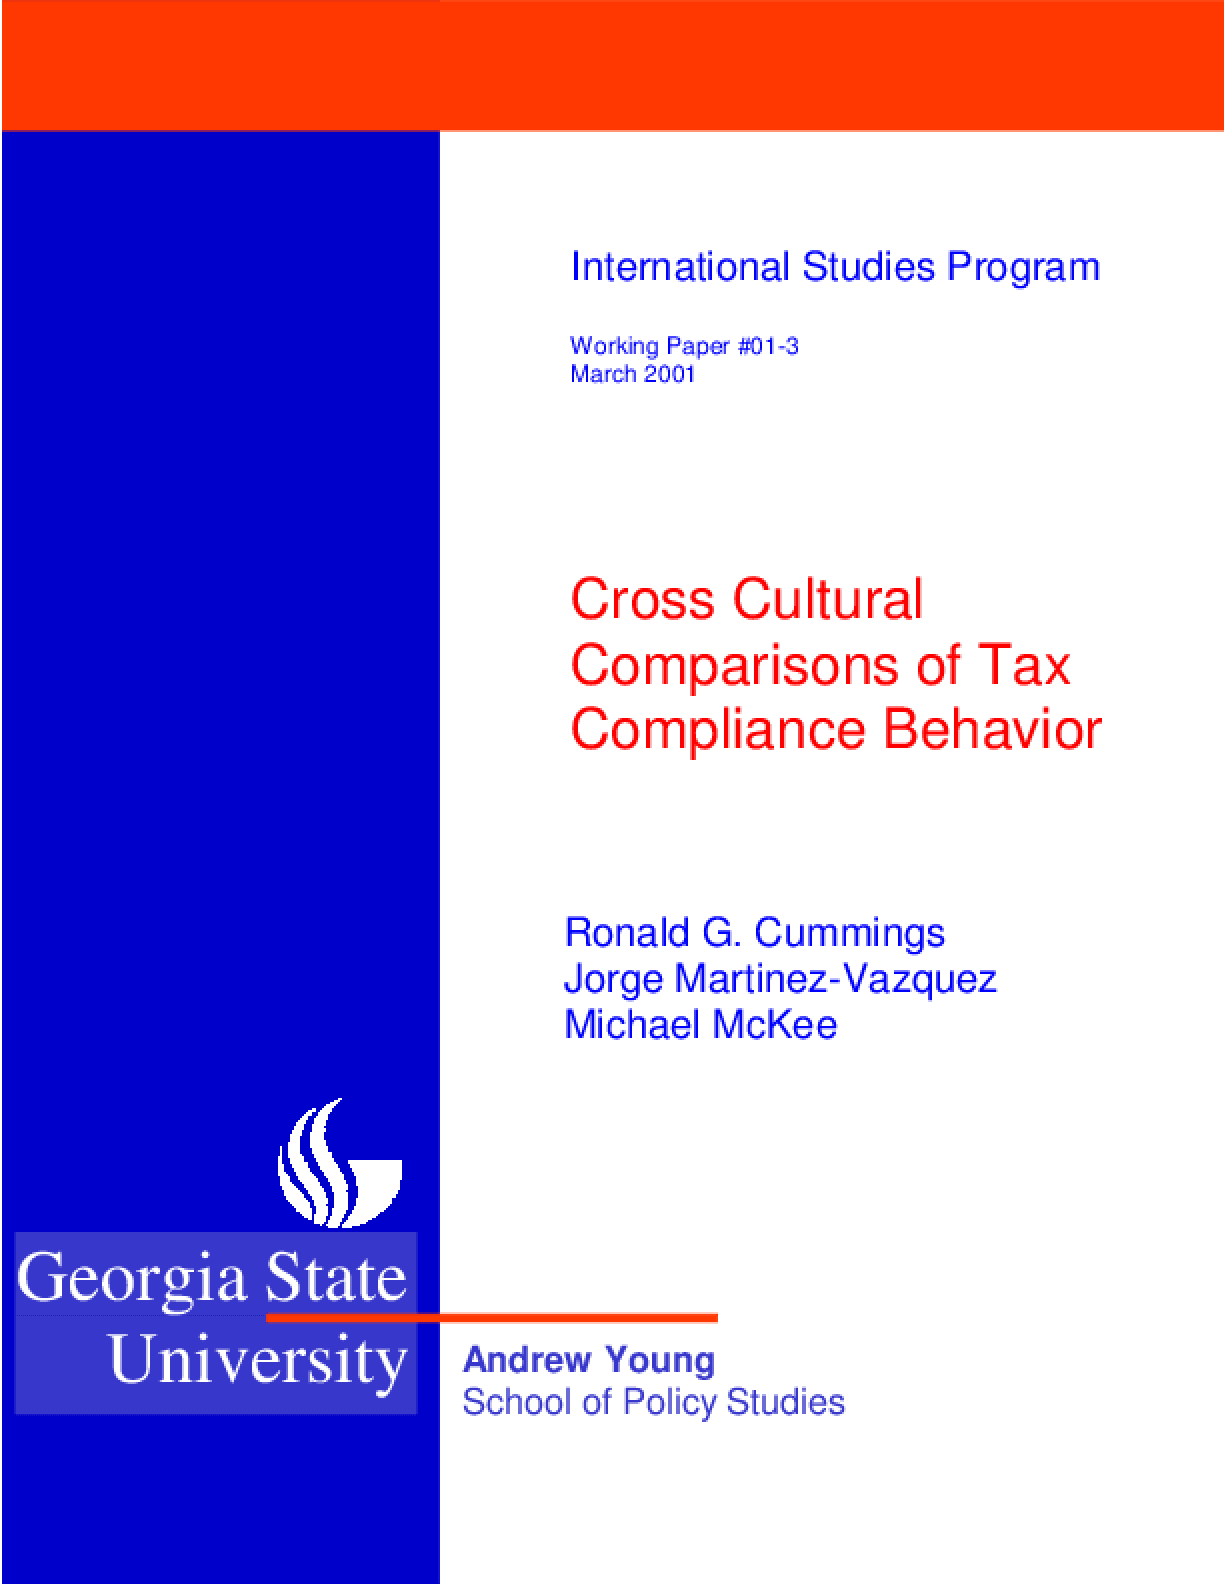 Cross Cultural Comparisions of Tax Compliance Behavior